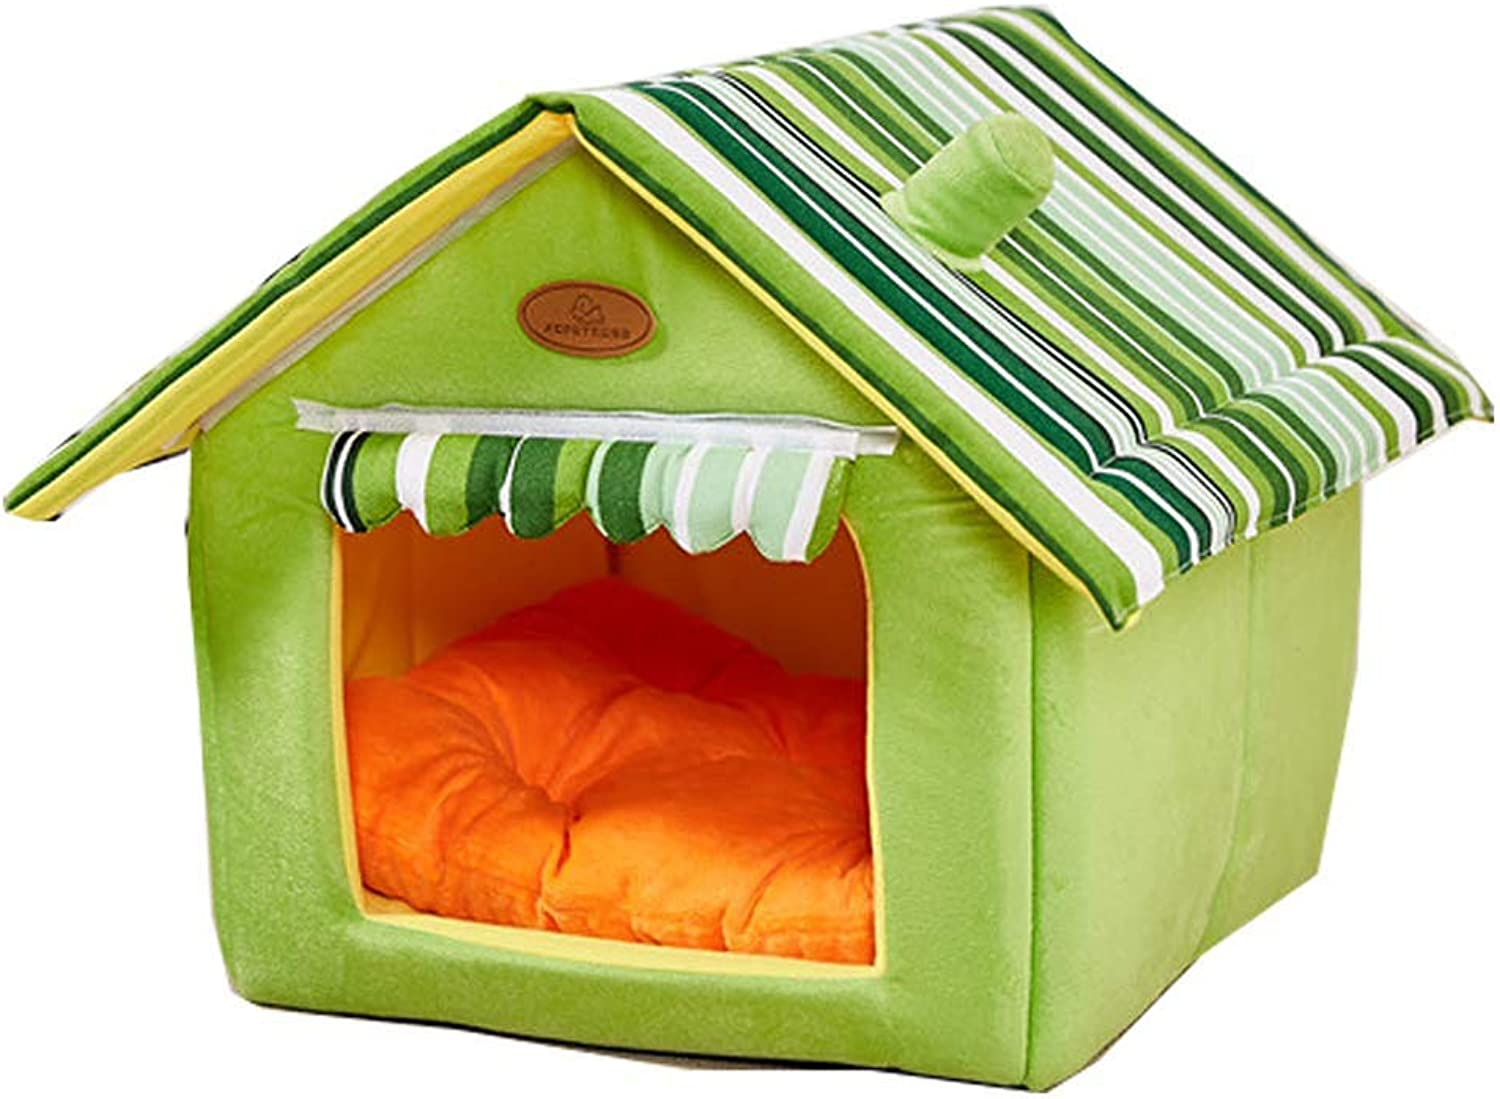 QNMM Cat and dog house indoor soft house shape pet nest cat bed dog bed small animal bed sponge material portable indoor pet house easy to carry for comfortable outings and short trips,Green,XL